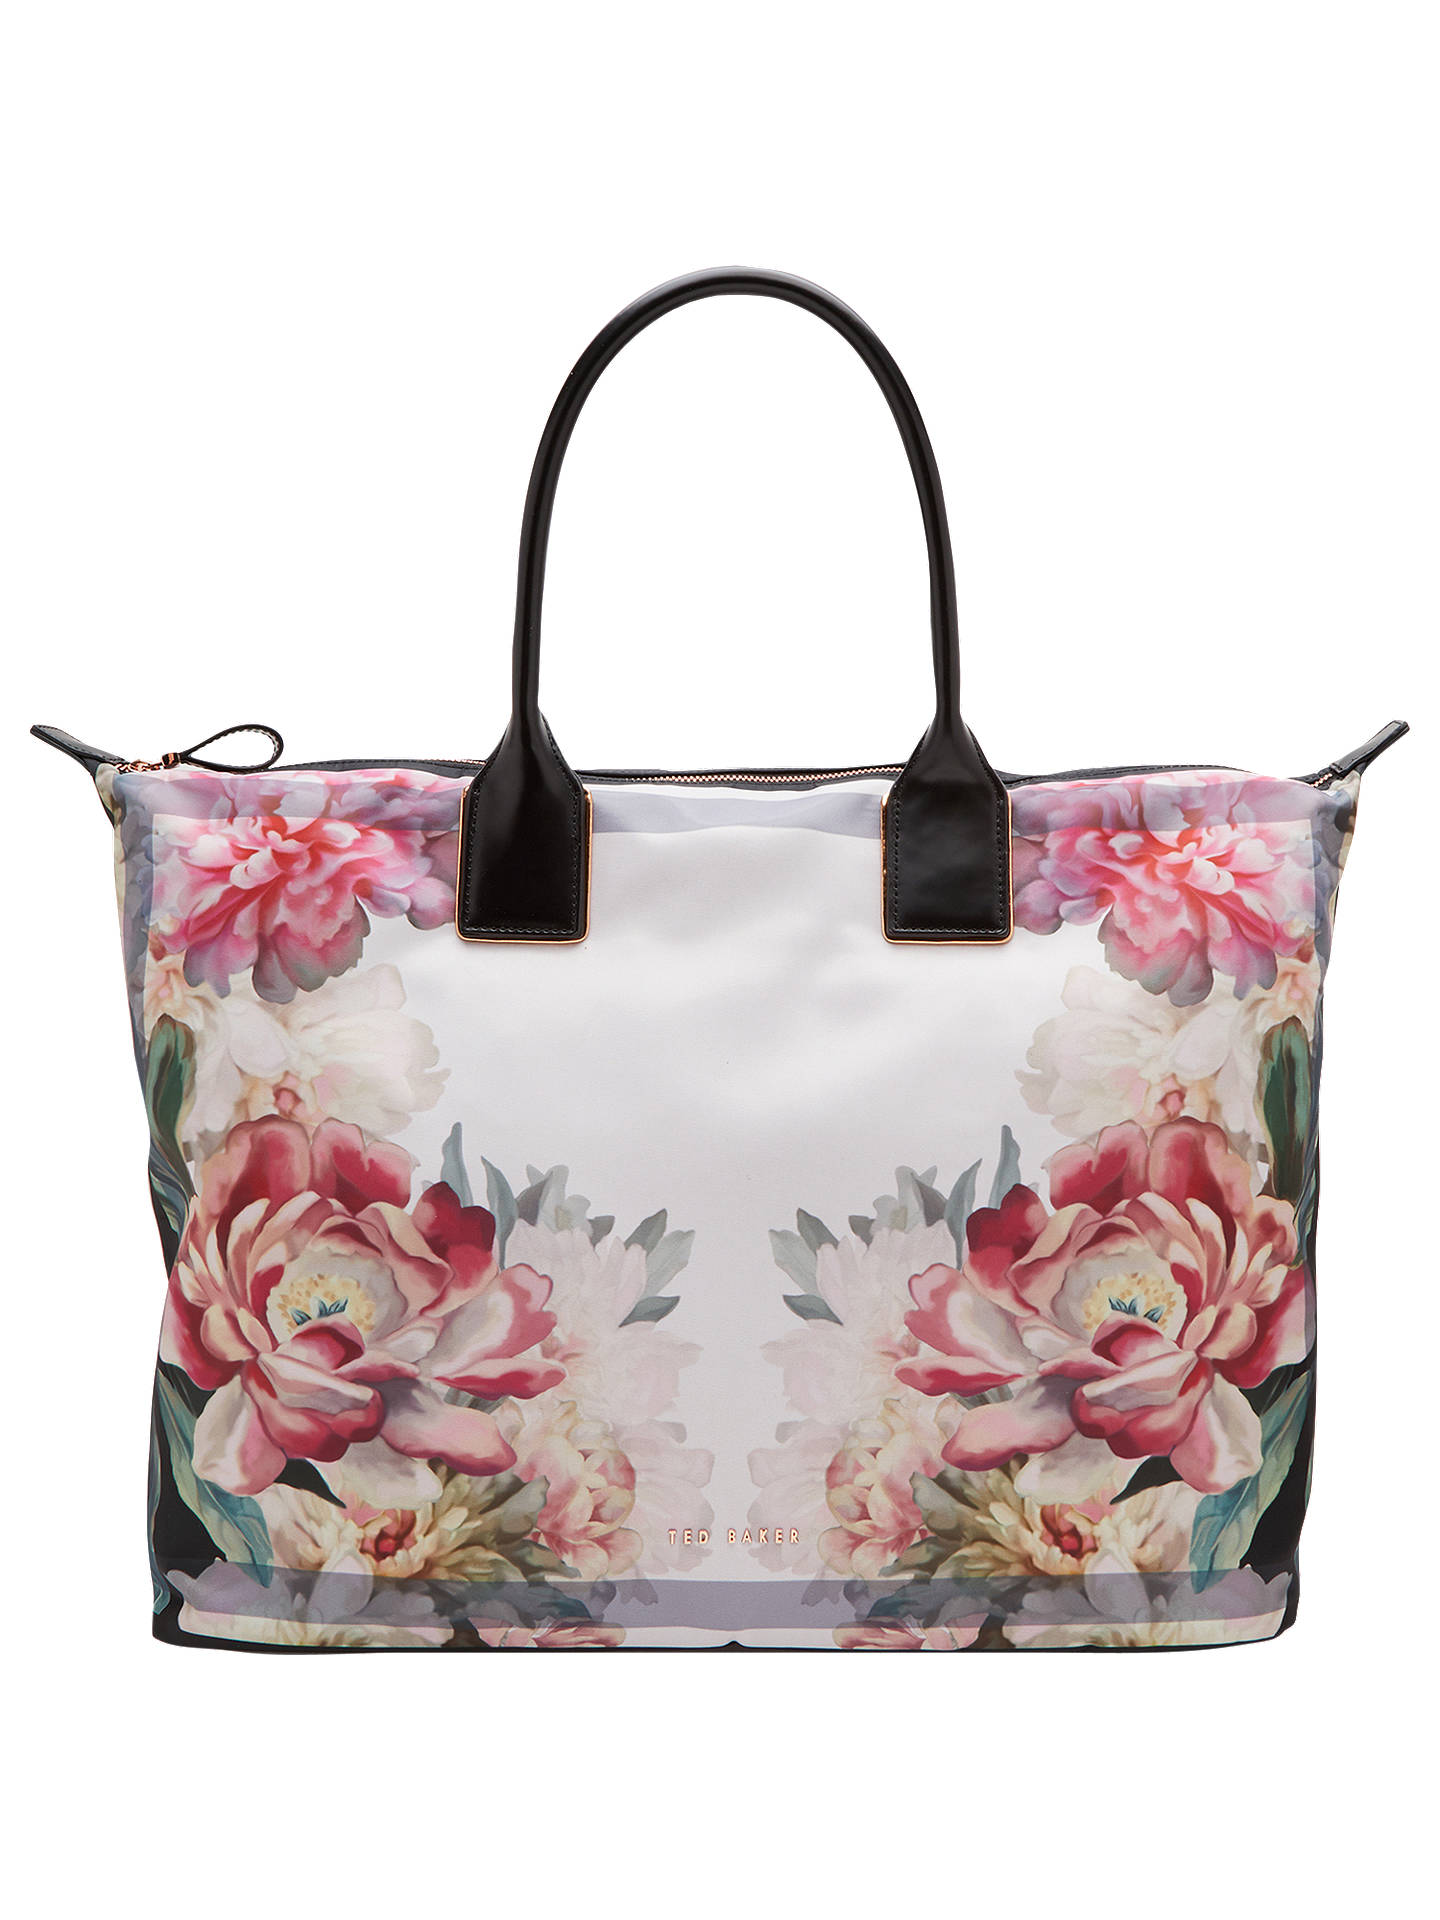 252473294a43 Ted Baker Nessie Painted Posie Large Tote Bag